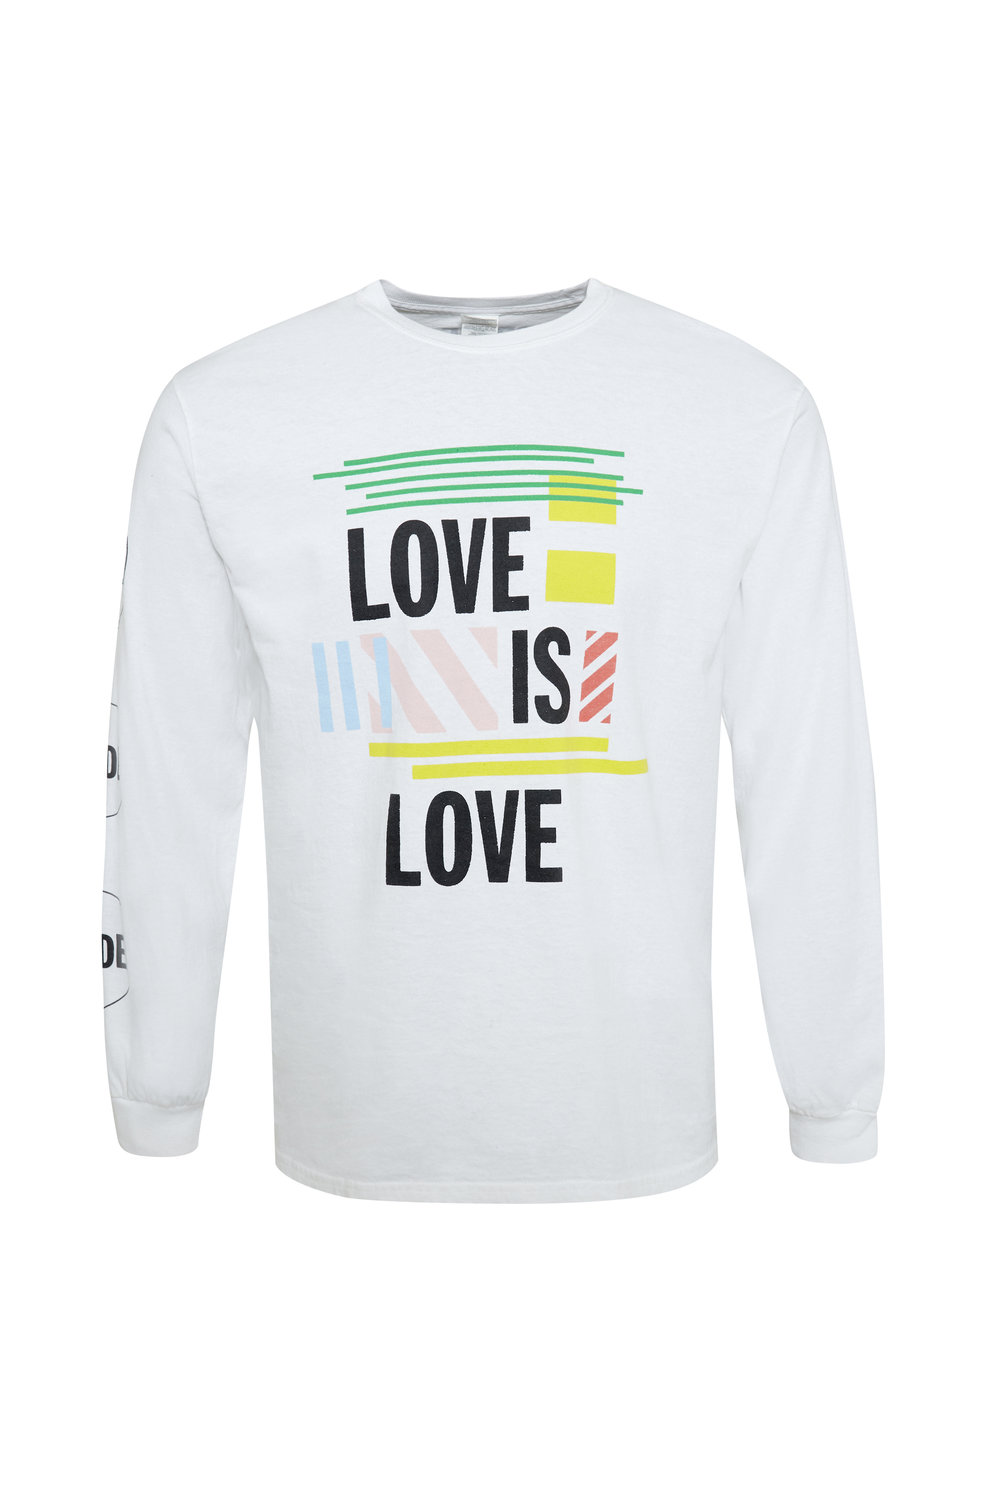 Urban Outfitters PRIDE top £30 or €39.jpg